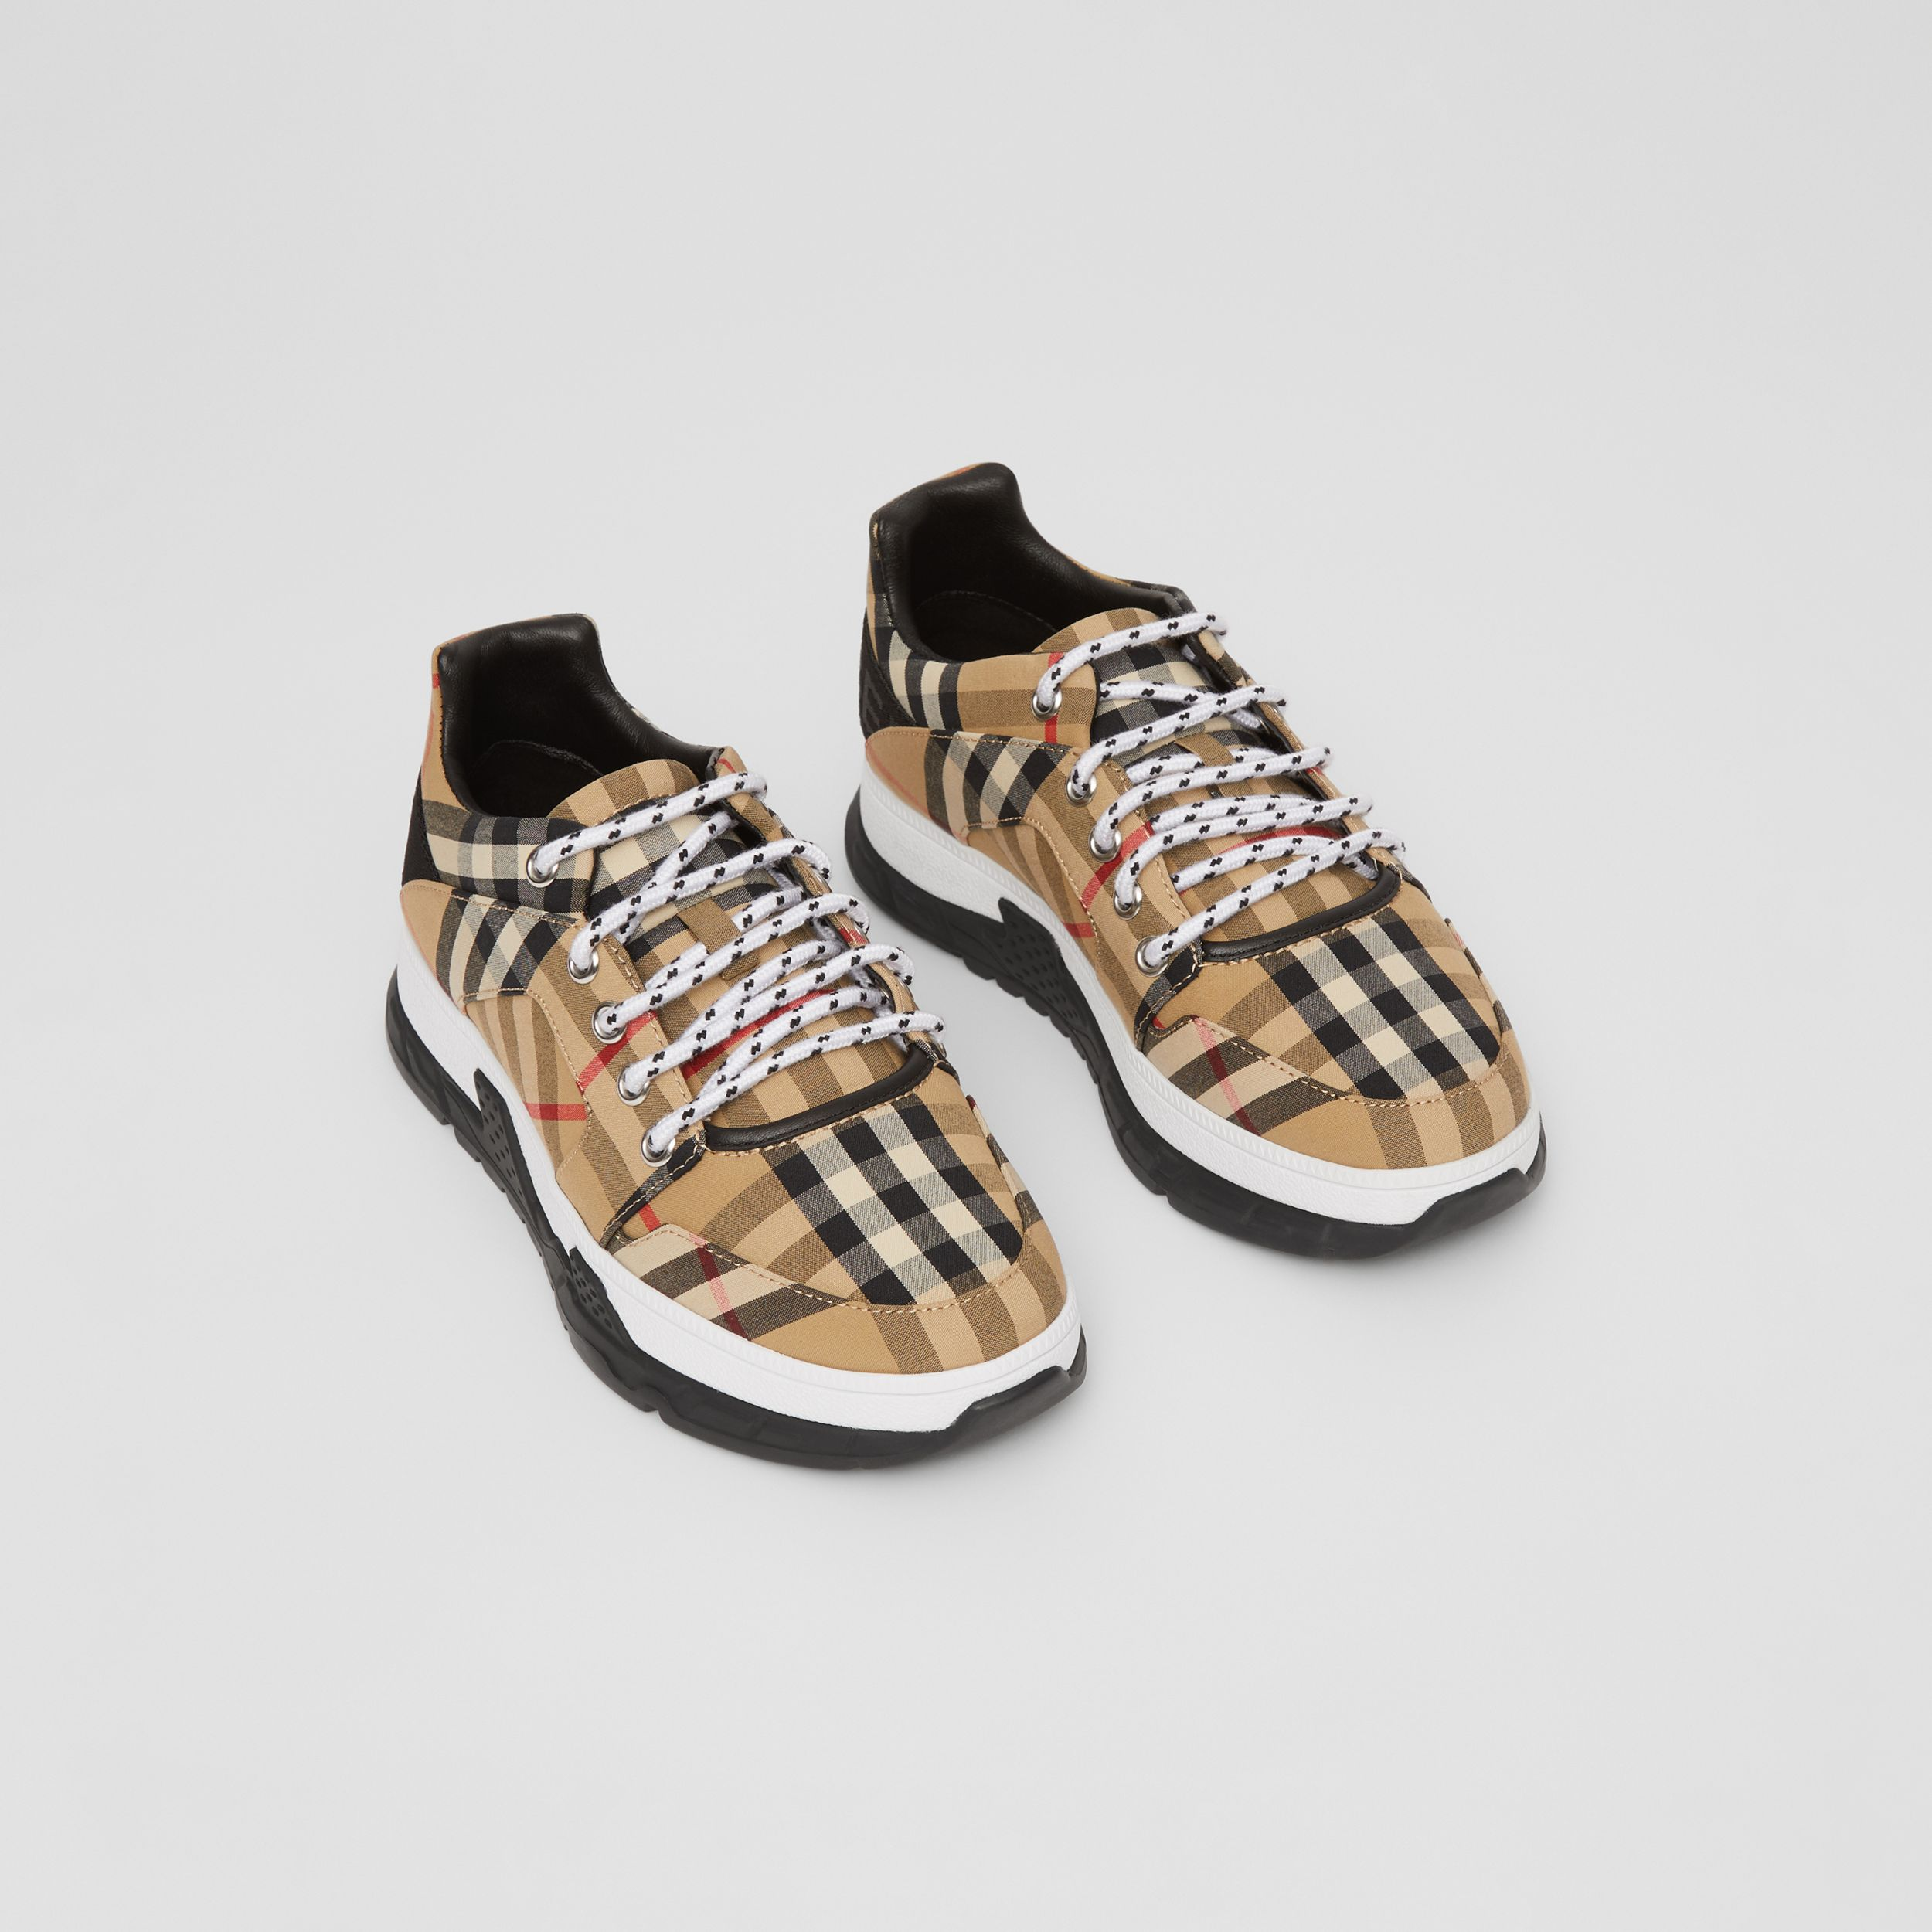 Logo Detail Vintage Check Cotton Sneakers in Archive Beige - Children | Burberry - 1